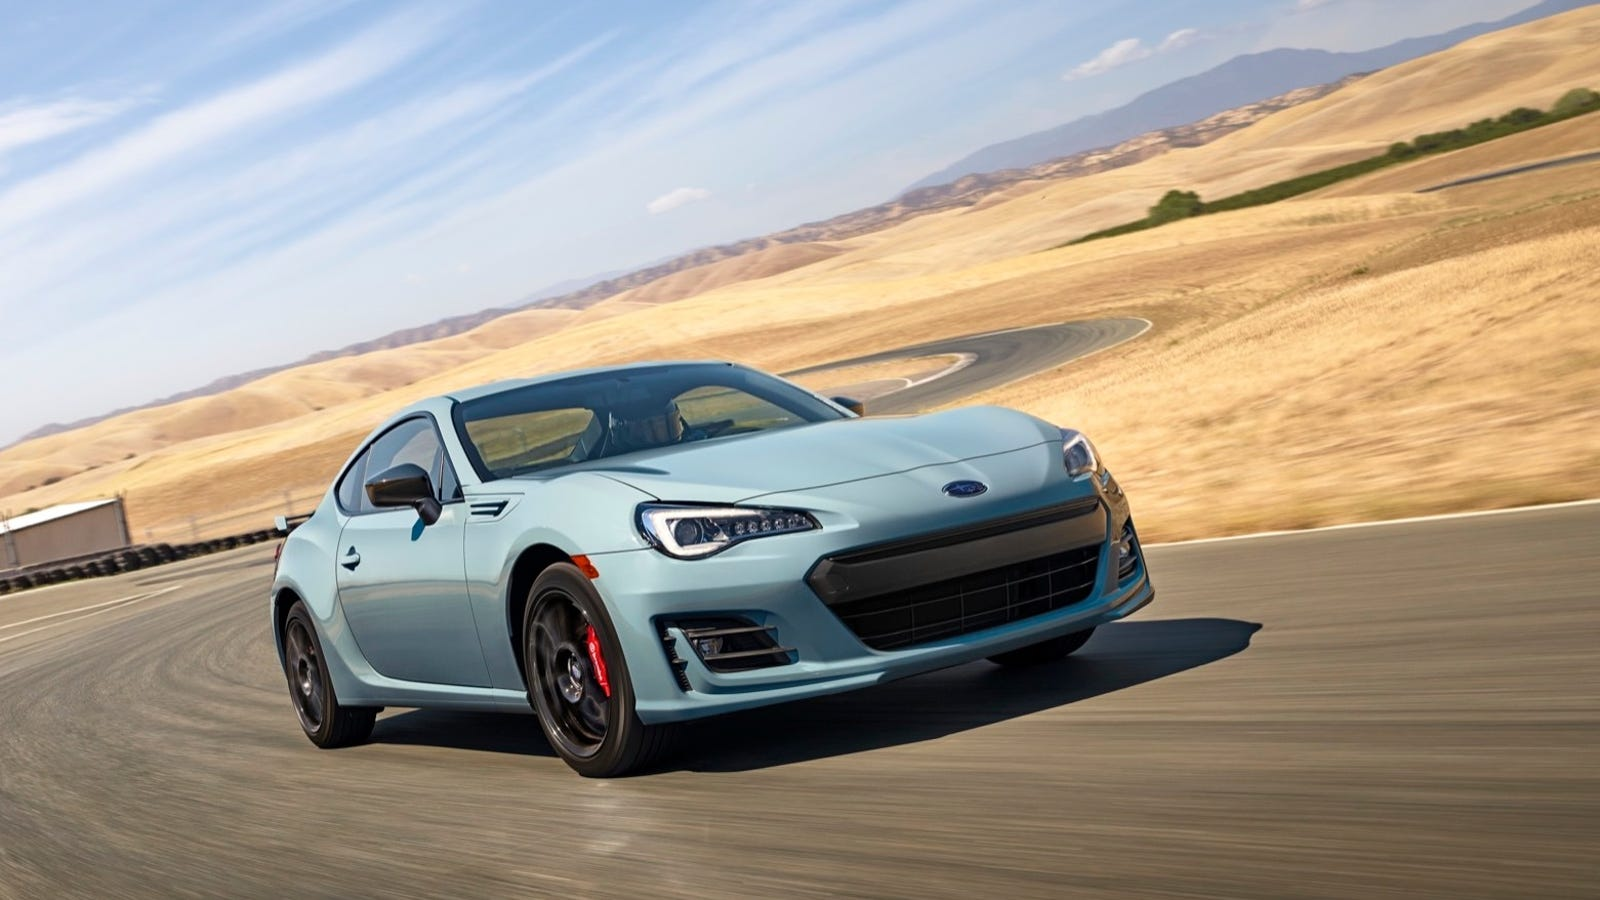 2019 Subaru BRZ Gets 300 HP Turbo Engine—Wait, No, Sorry, Just This Gray Color